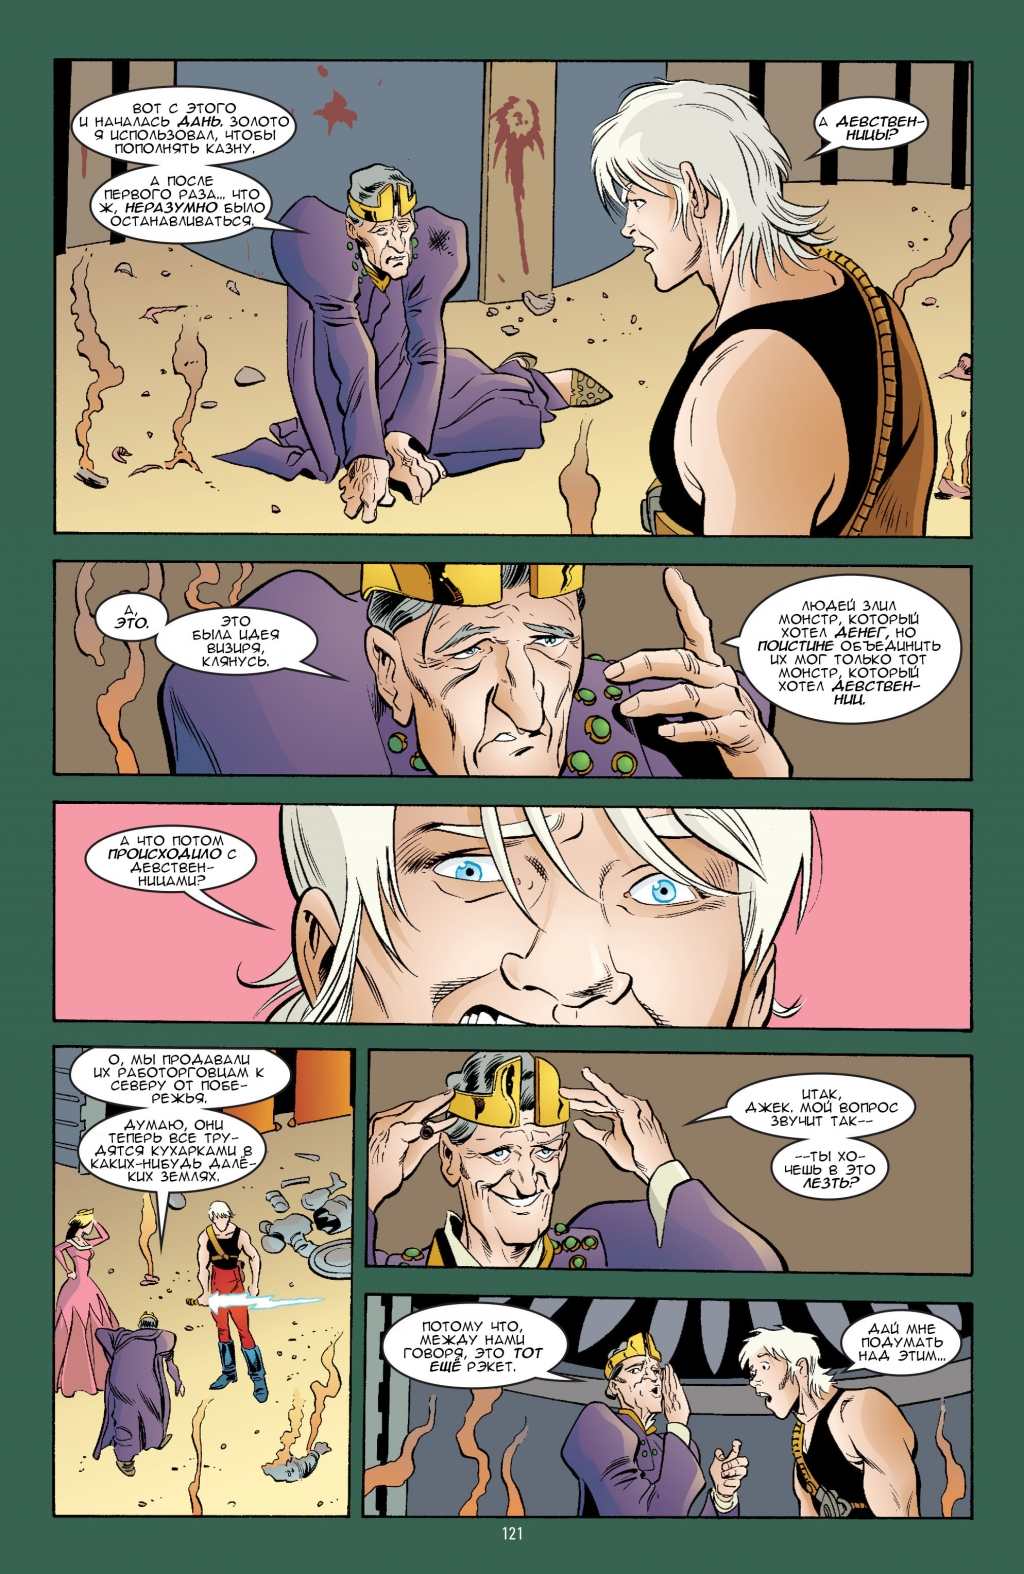 Jack of Fables vol08 113.jpg